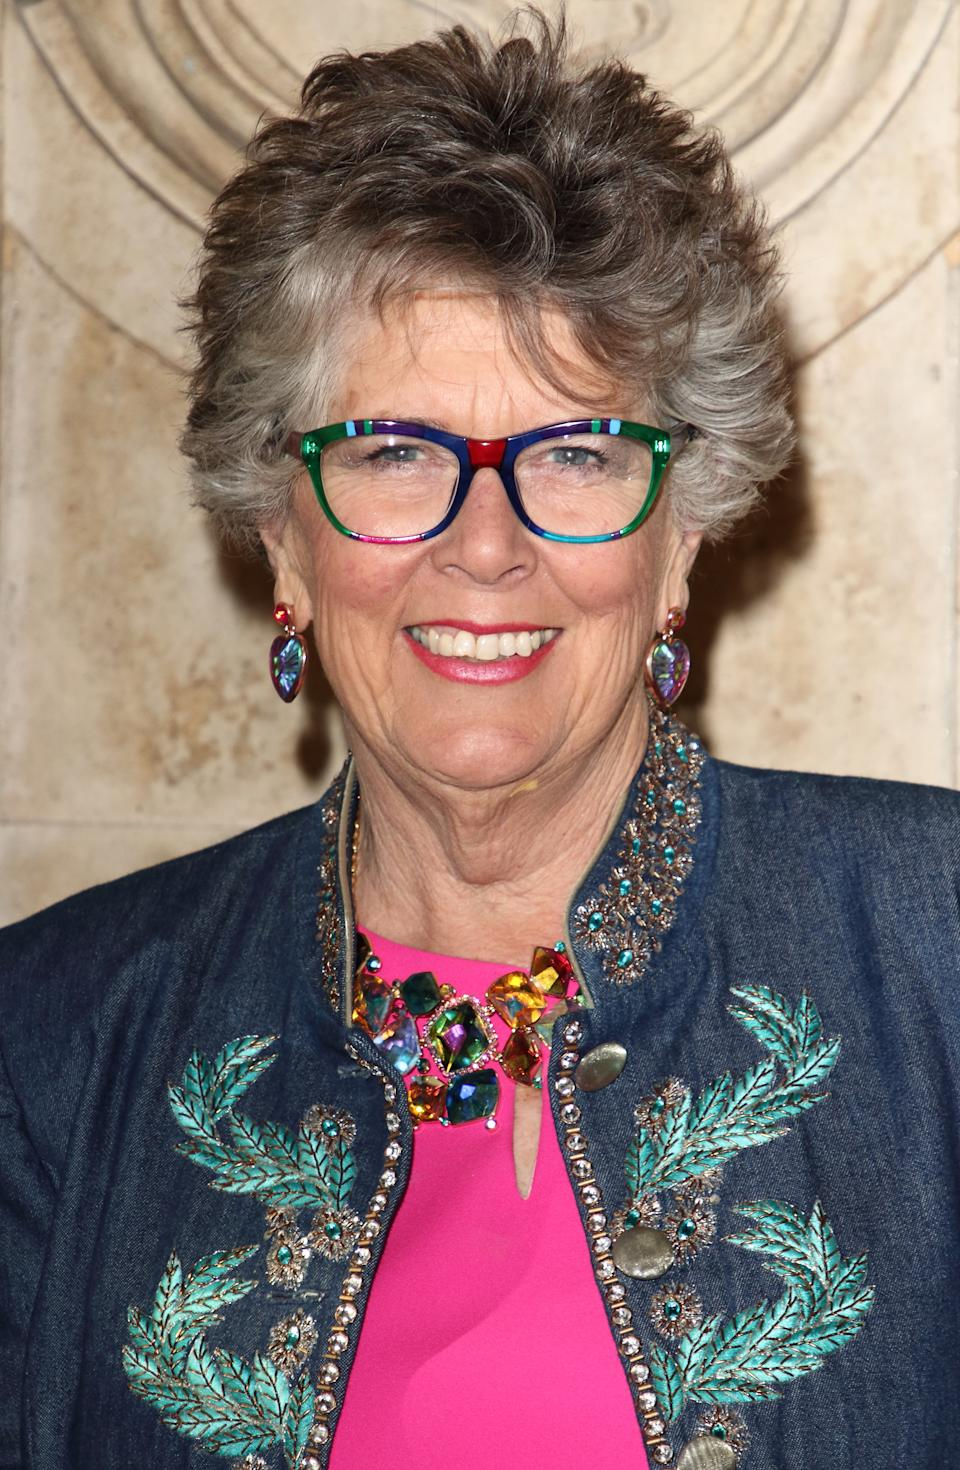 Prue Leith attends the English National Ballet's Cinderella - Opening Night - at the Royal Albert Hall, Kensington, London. (Photo by Keith Mayhew/SOPA Images/LightRocket via Getty Images)